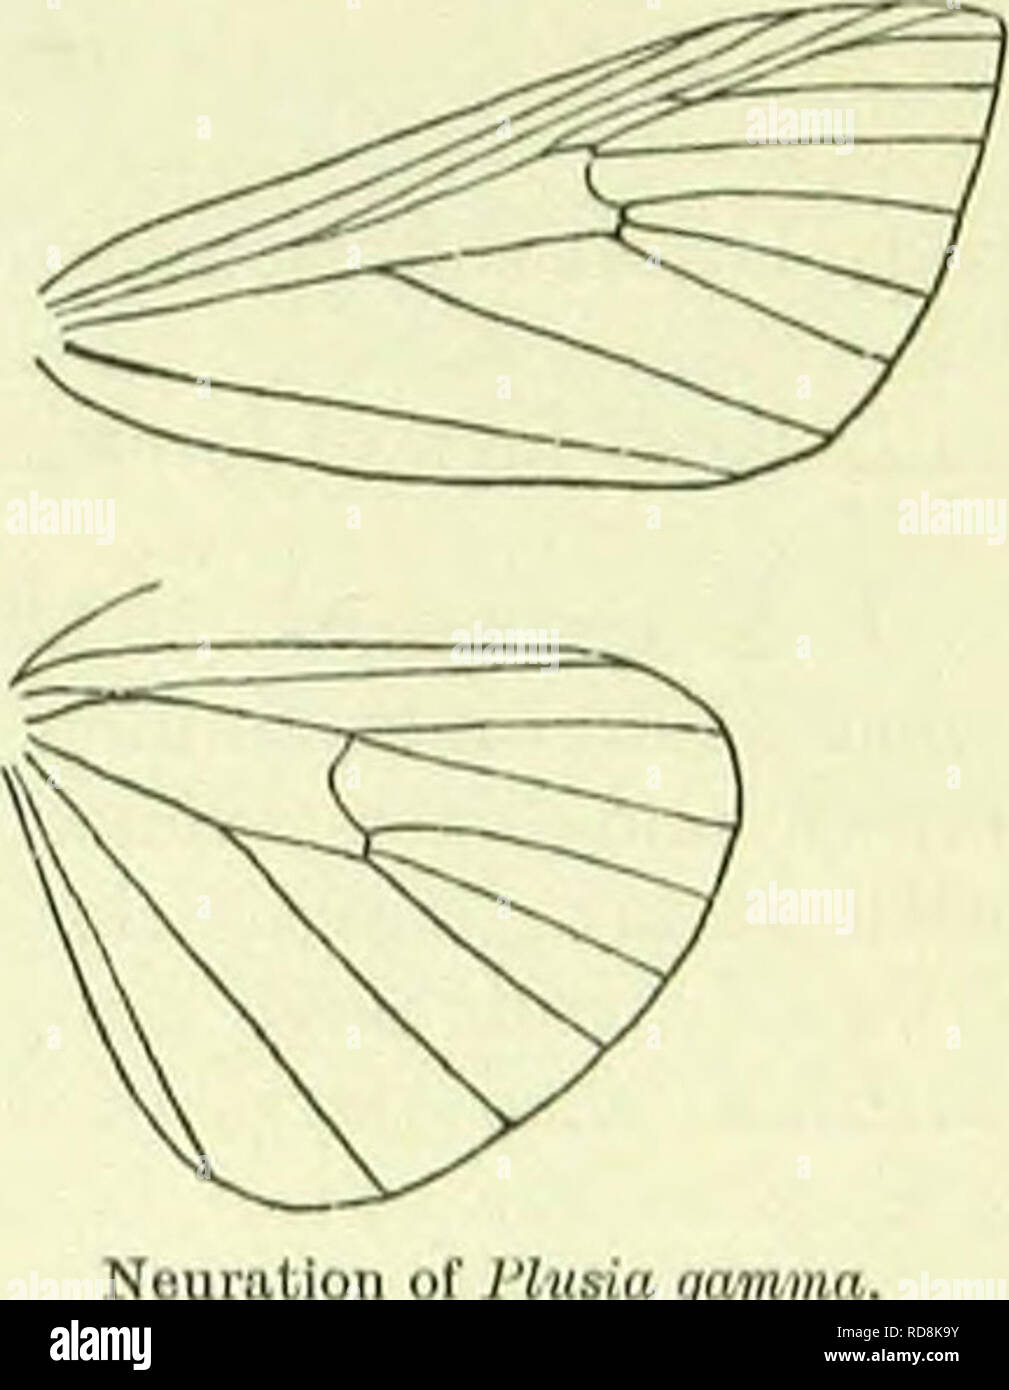 . A handbook of British lepidoptera. Lepidoptera. SCOMOrTERYX] l'l.UKIADAH spots on costa posteriorly. Hindwings rather dark fuscous, lighter basally. Britain to the Shetlands, Ireland, common; N. and C. Europe, N. and WC. Asia to Turkestan, N. America; 8-5. Larva green; dorsal line darker, indistinct; spiracular pale, darker-edged above; spiracles yellow, brown-edged; head green : on Salix and hawthorn ; 5-7. 12. Plusia, 0. Head rough-scaled. Antcnnao in $ very shortly ciliated. Palpi rather long, curved, ascend- ing, second joint rough - scaled, terminal moderately long or short, more or les - Stock Image